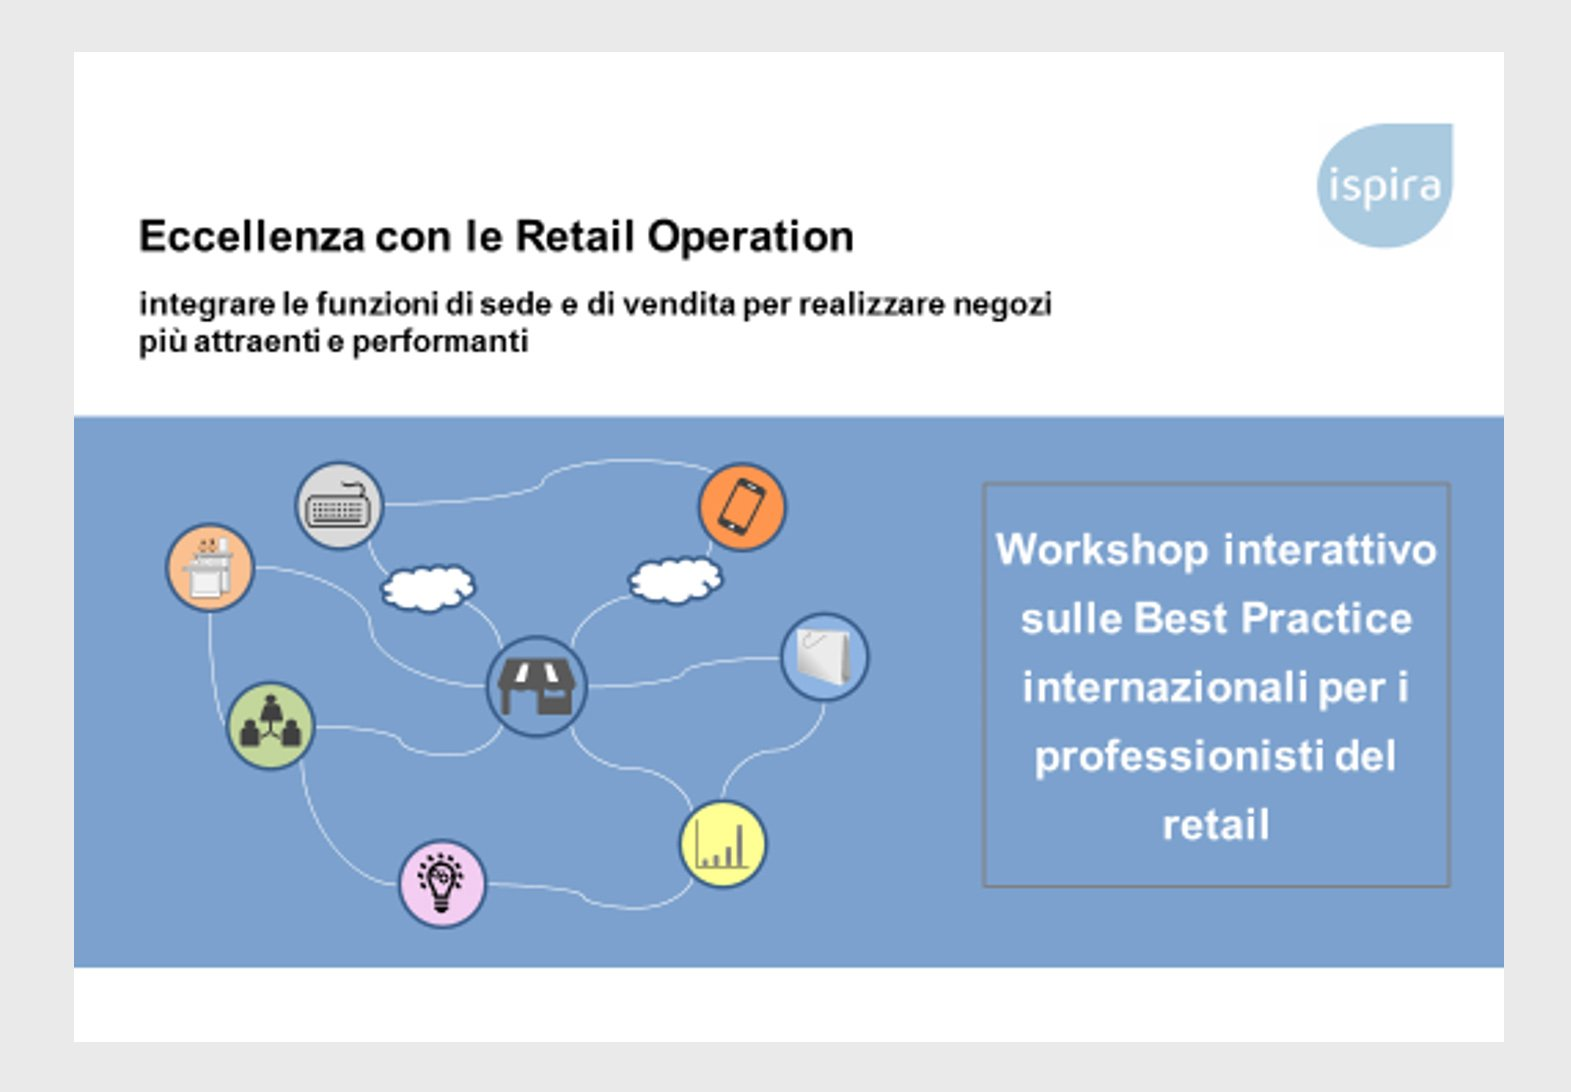 Eccellenza con le Retail Operation - Ispira Ltd